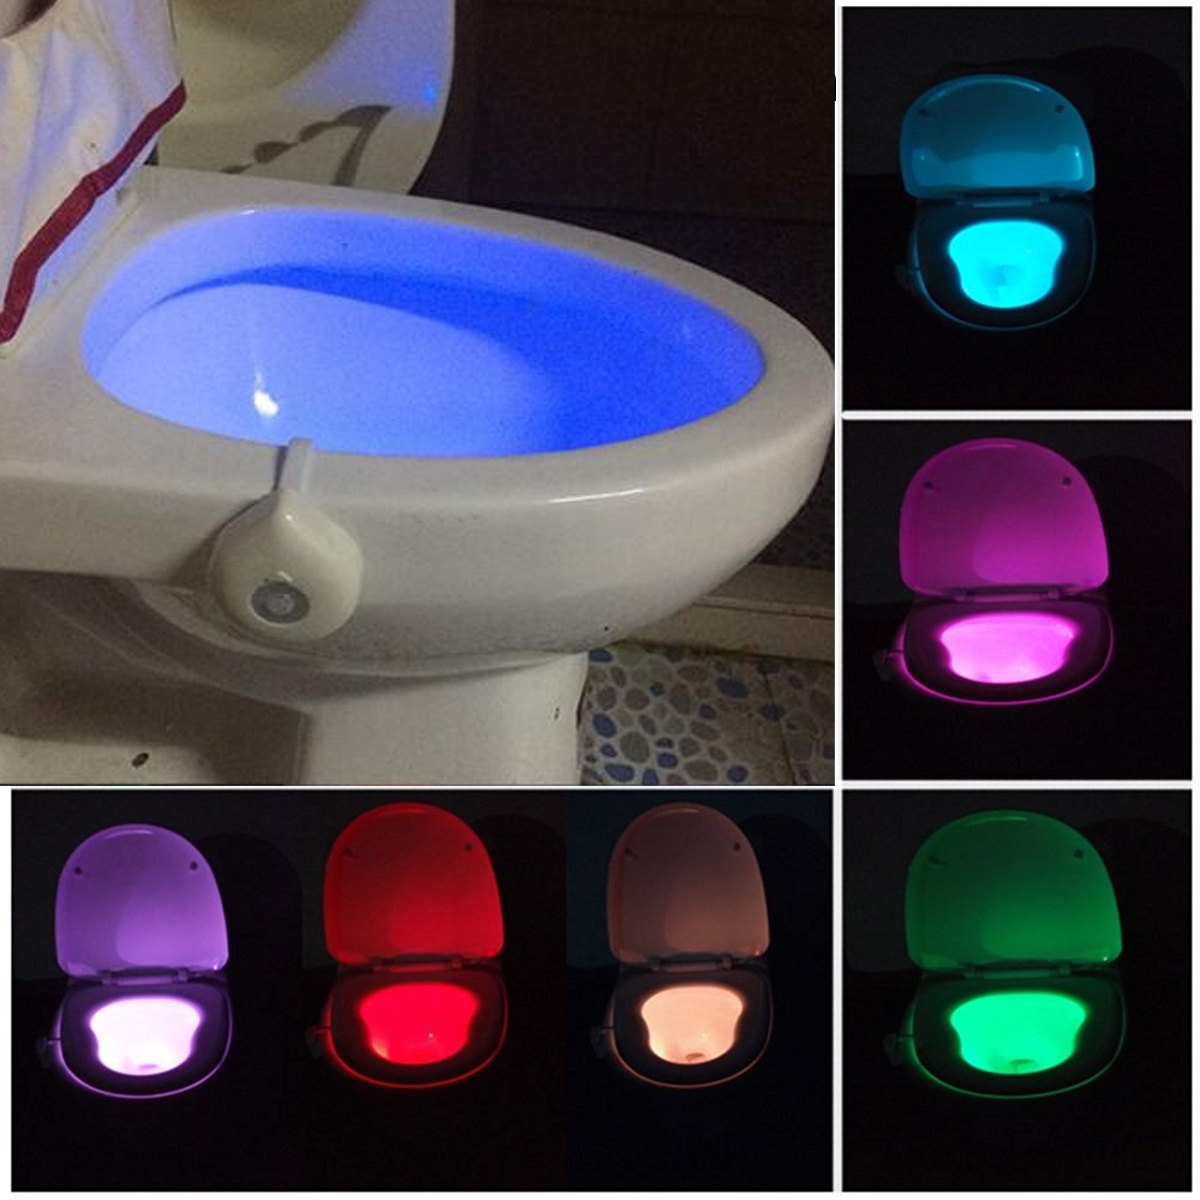 8 Color LED RGB Motion Automatic Sensor Toliet Night Light Toilet Seat Lamp ABS White Body Human Motion Activated